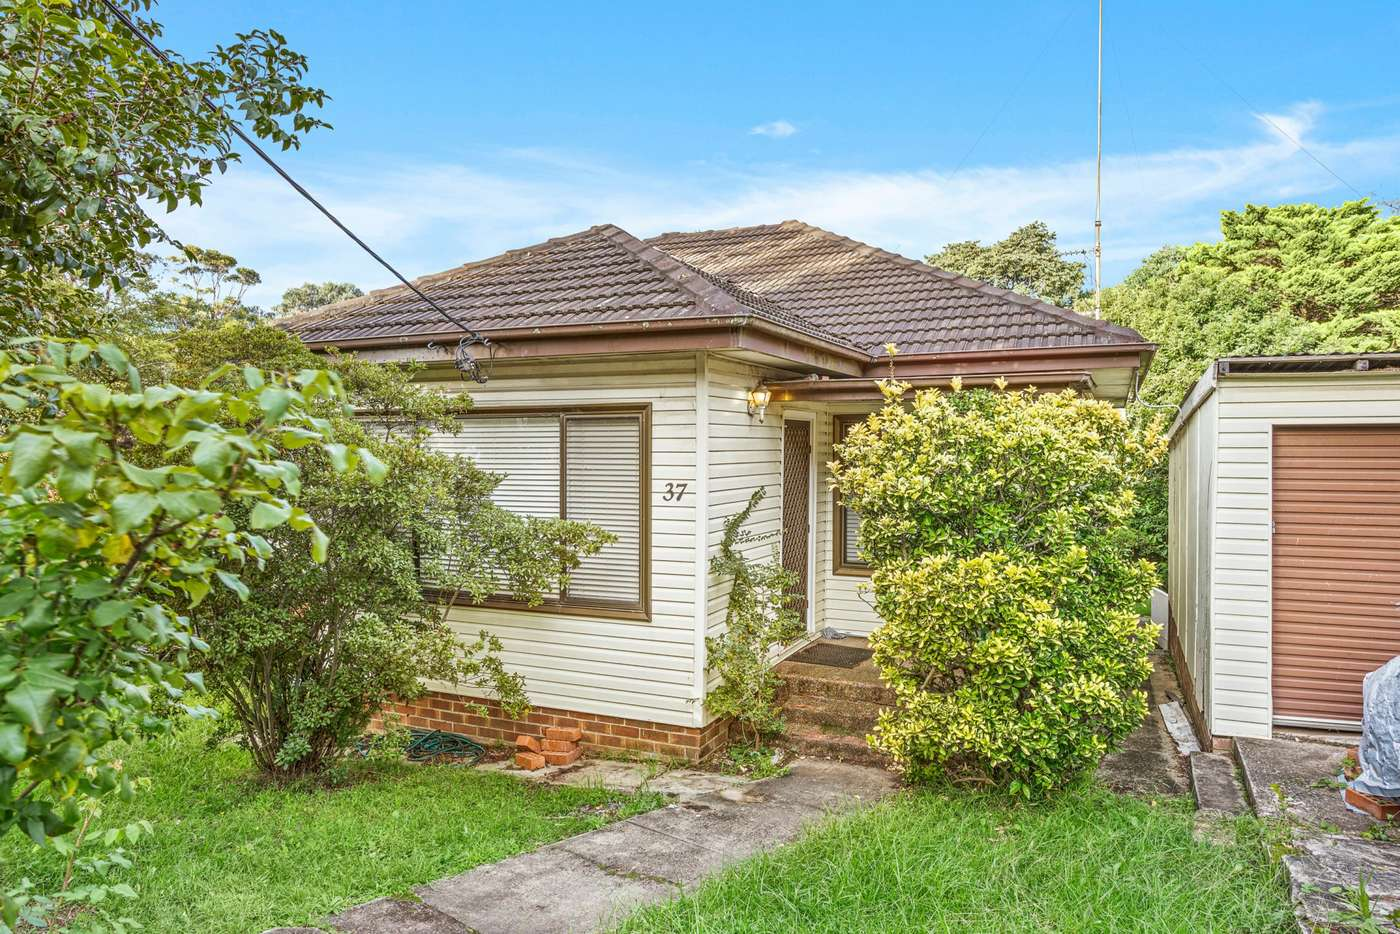 Main view of Homely house listing, 37 Abercrombie Street, West Wollongong NSW 2500